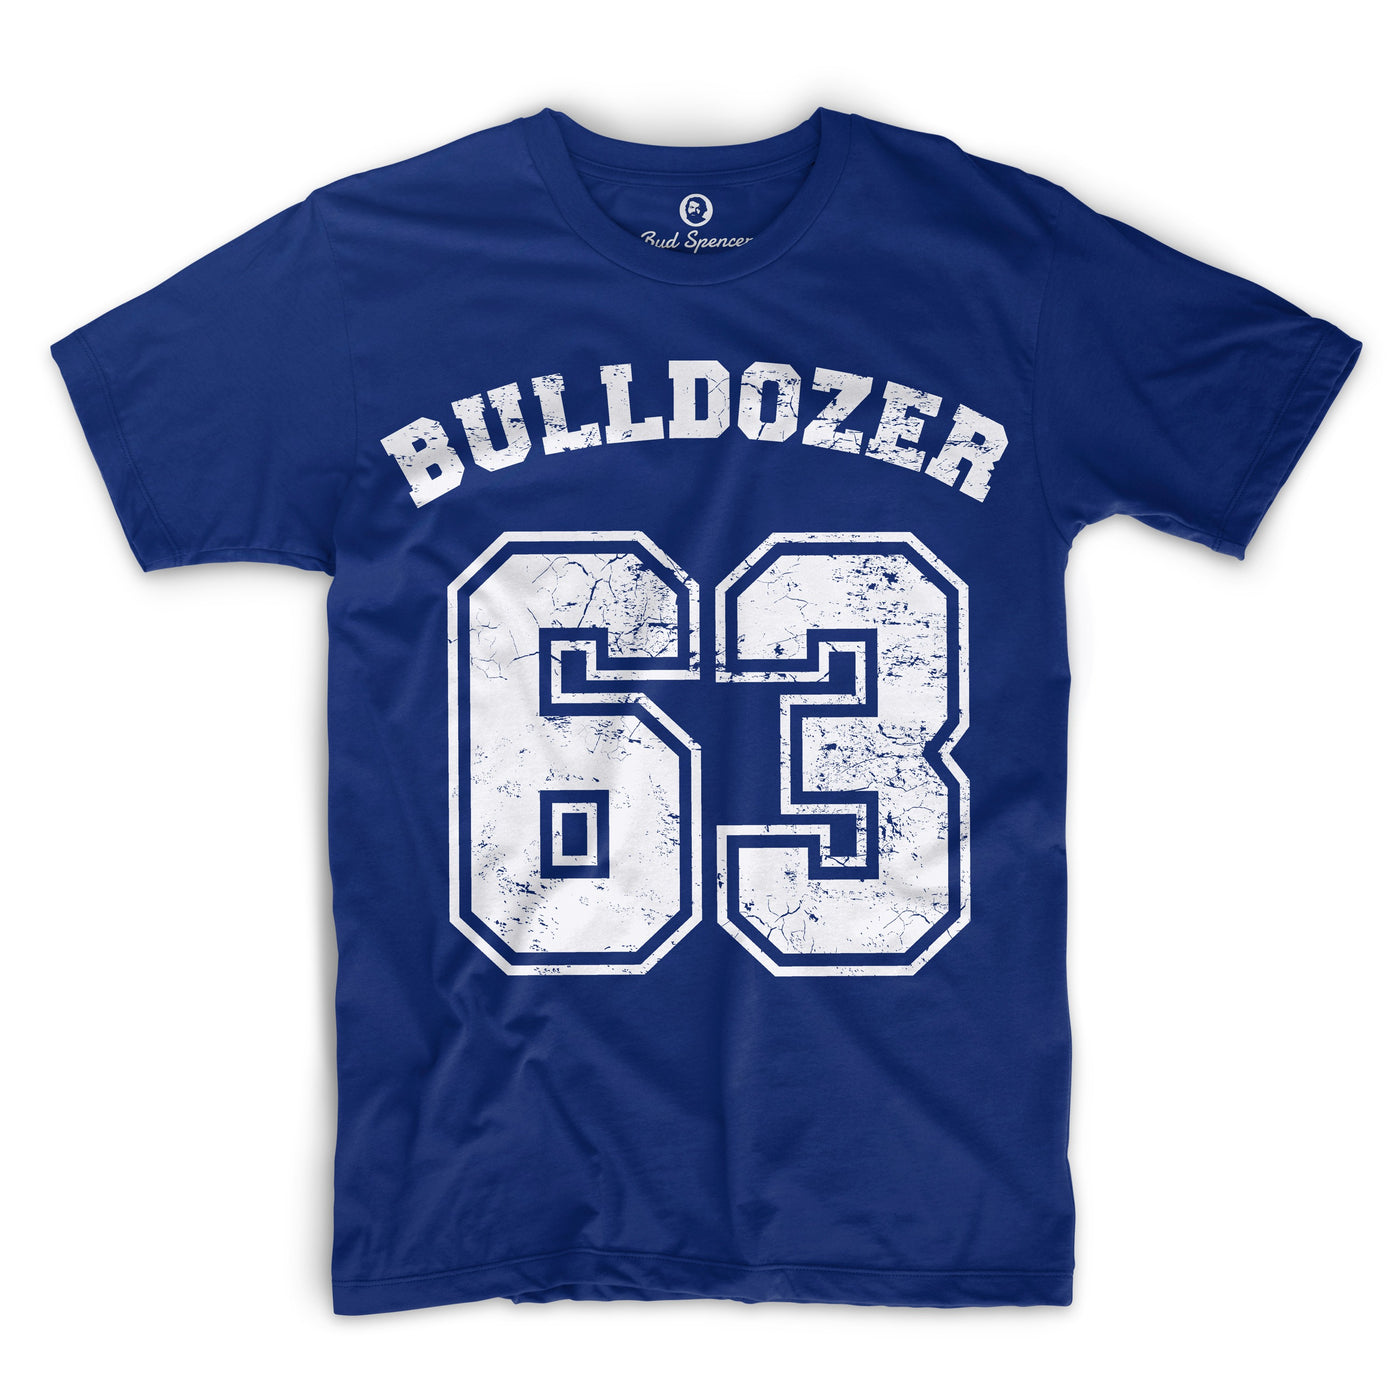 Bulldozer 63 T Shirt Bud Spencer